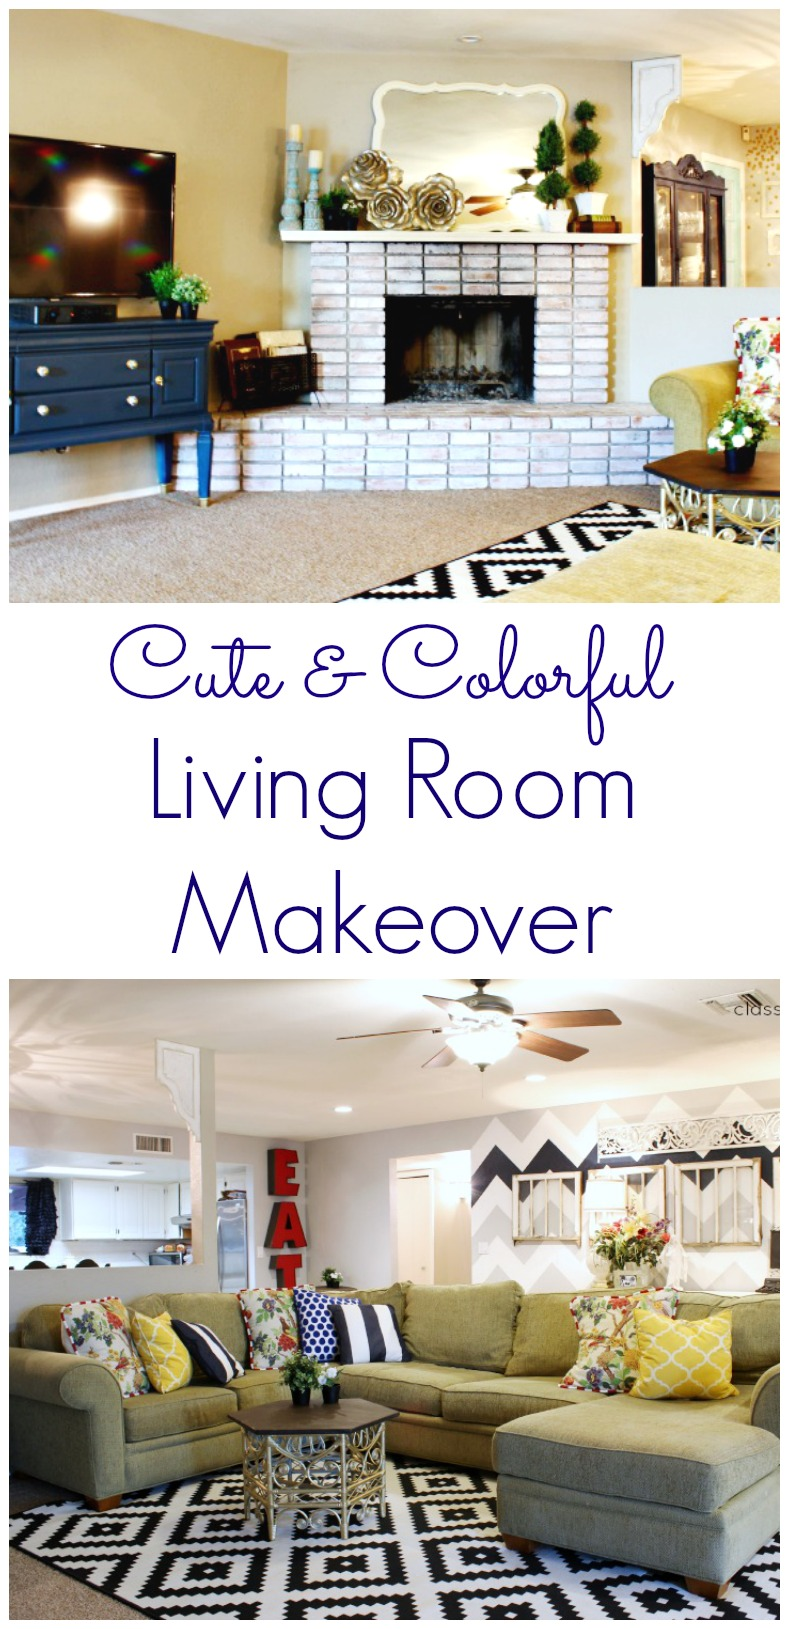 Cute and Colorful Living Room Makeover from Classy Clutter